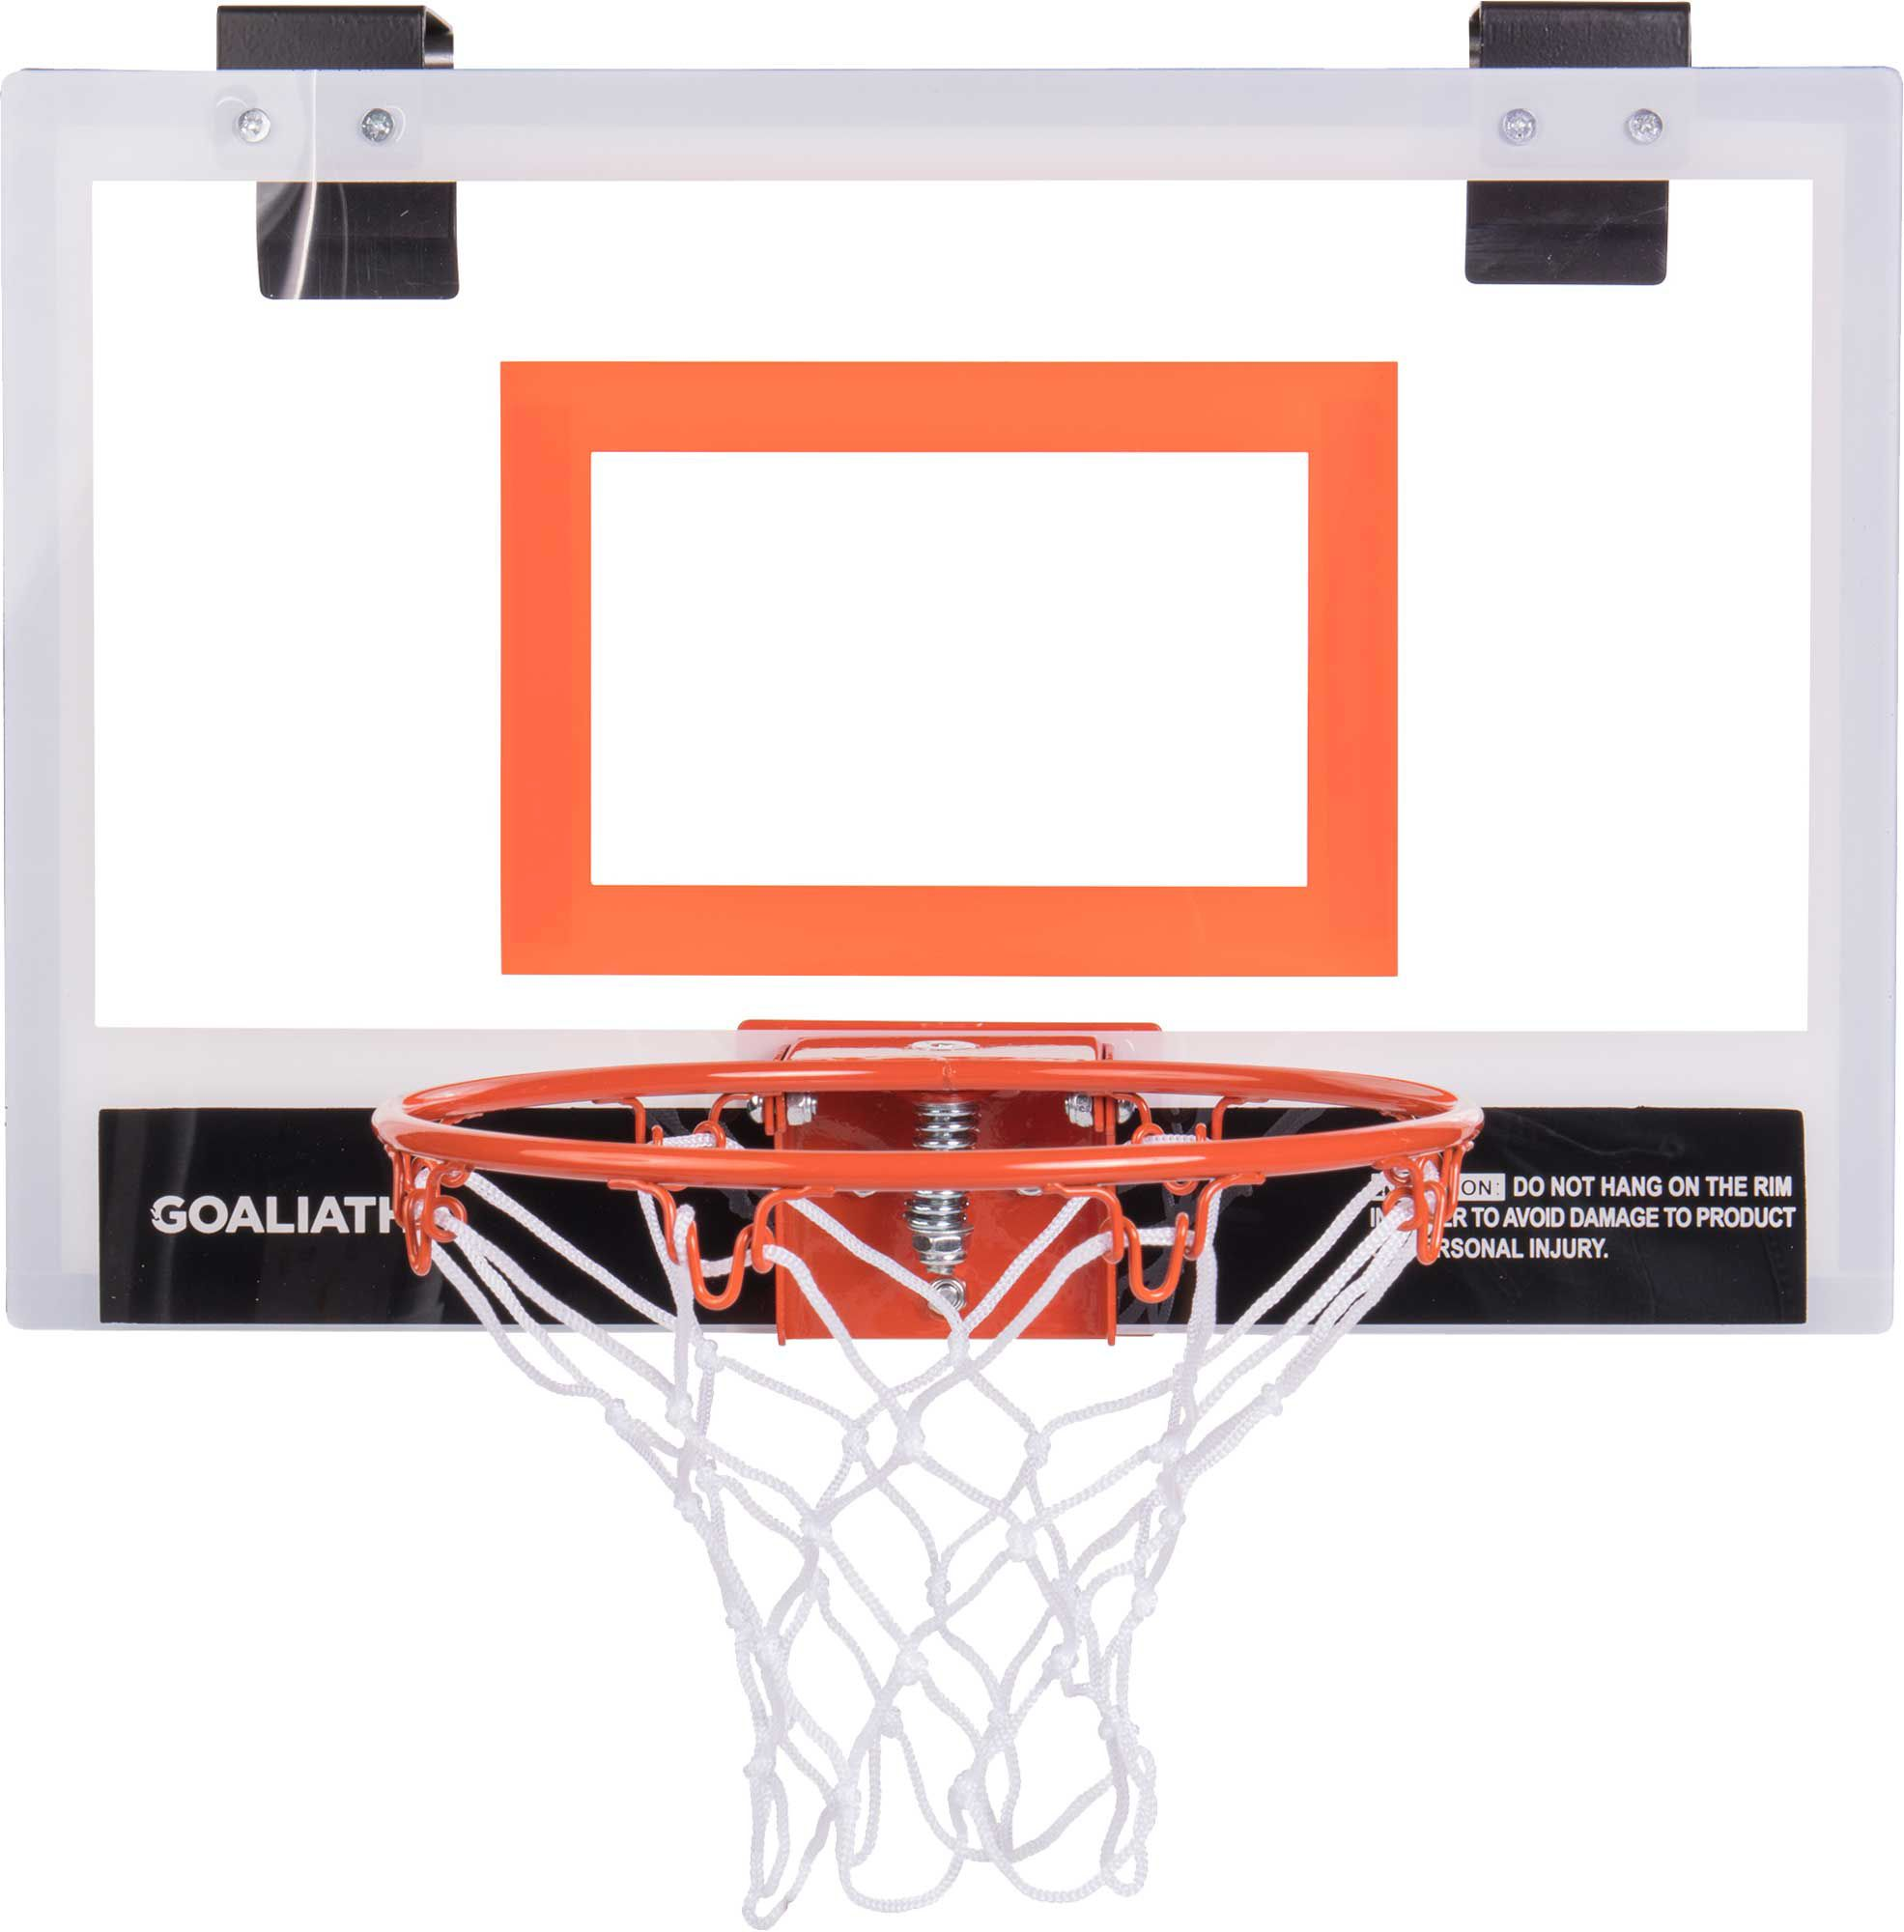 Sport Design Over The Door Basketball Instructions small pool designs for backyards shocking ideas backyard Product Image Goaliath 18 Mini Basketball Hoop